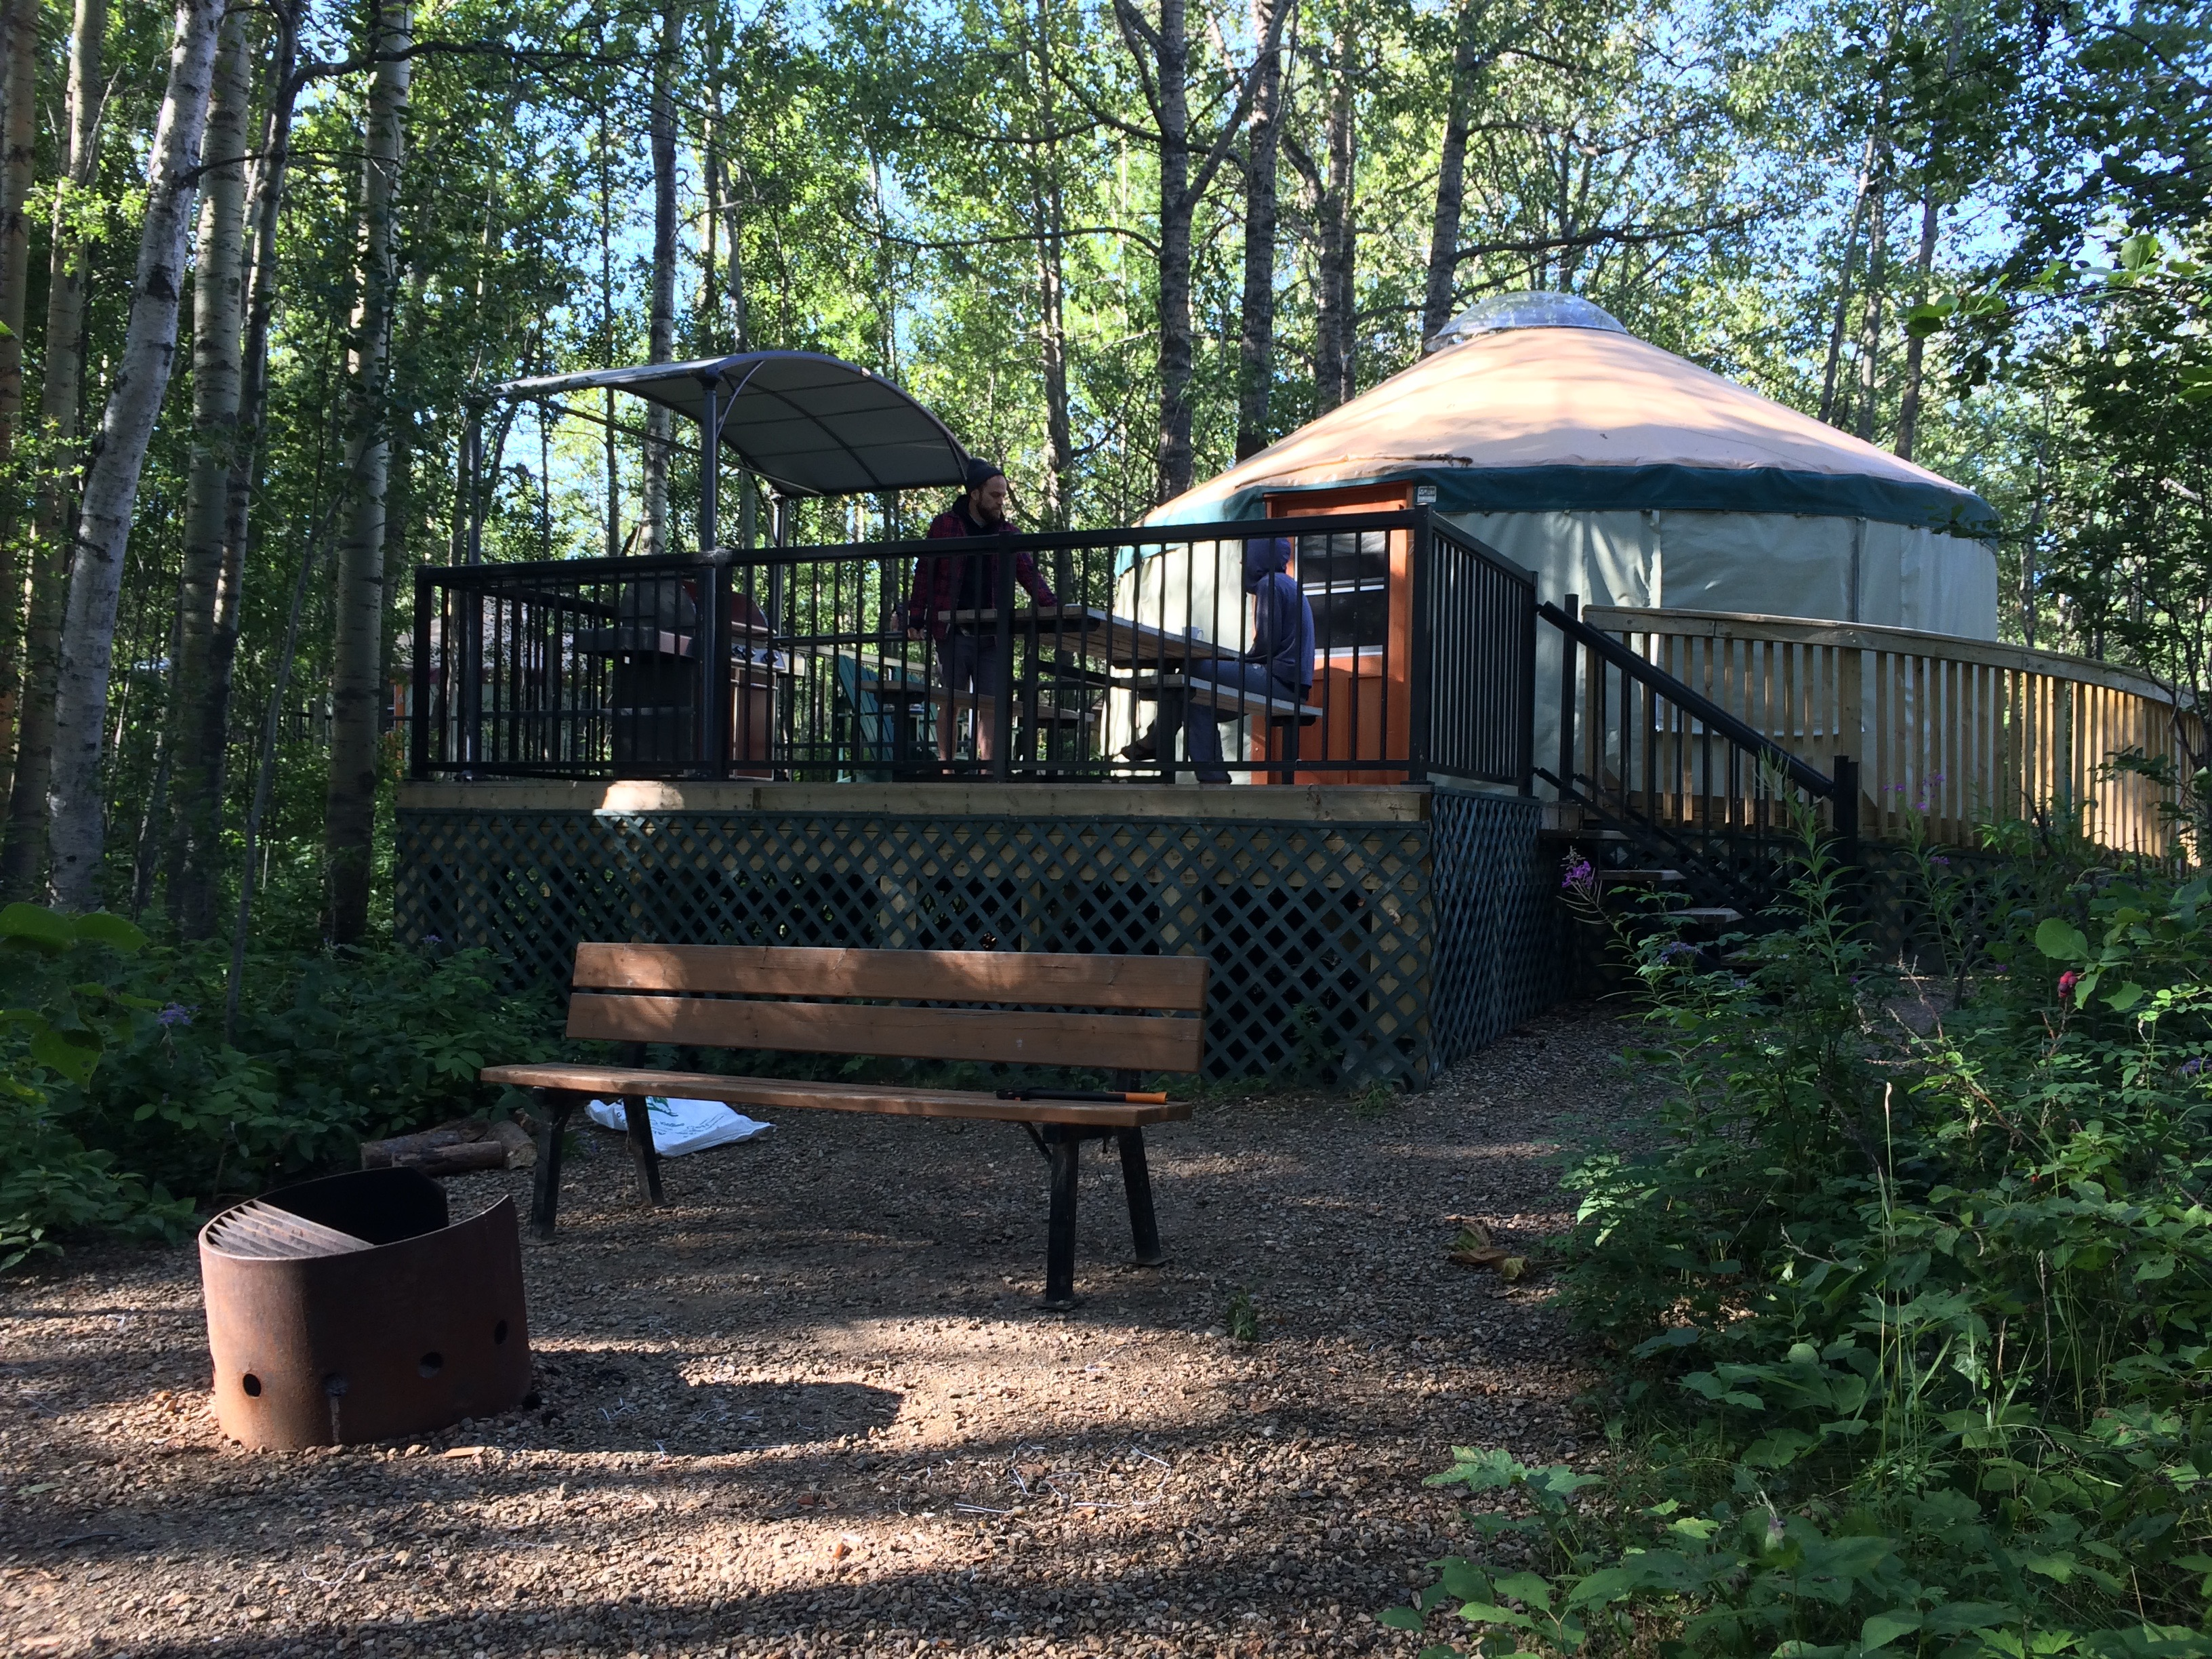 Make way for the yurts! Comfortable camping has come to Alberta!